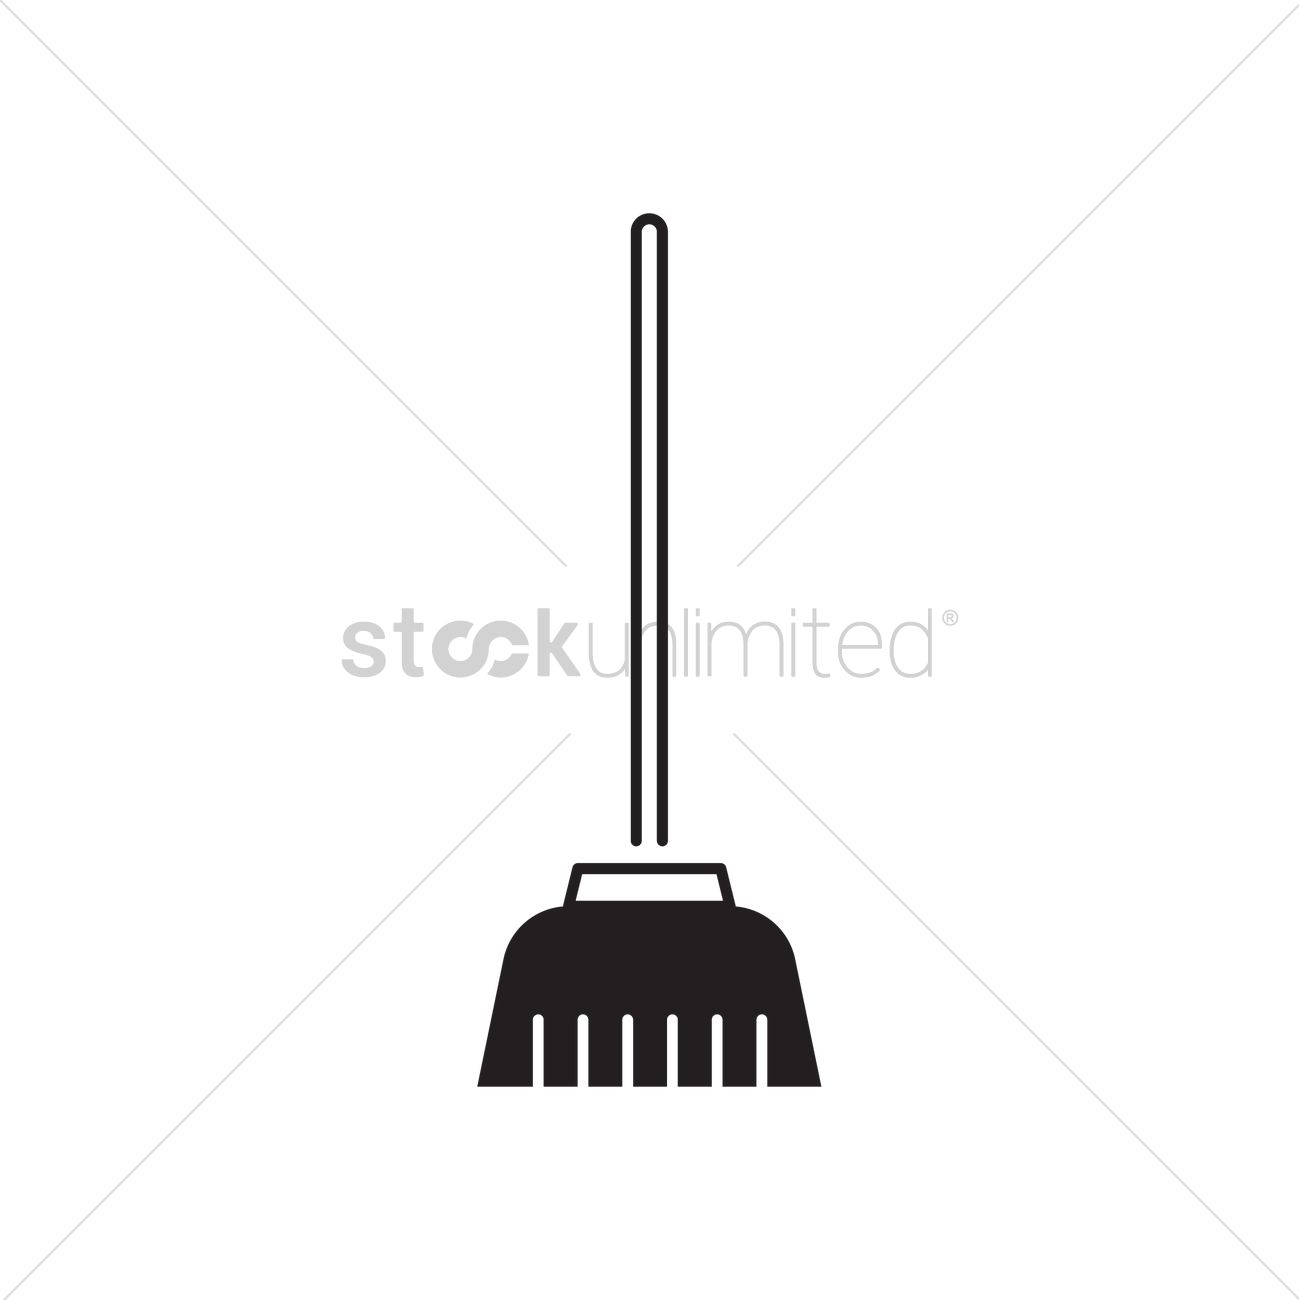 Broom Vector Image - 2004891 | StockUnlimited